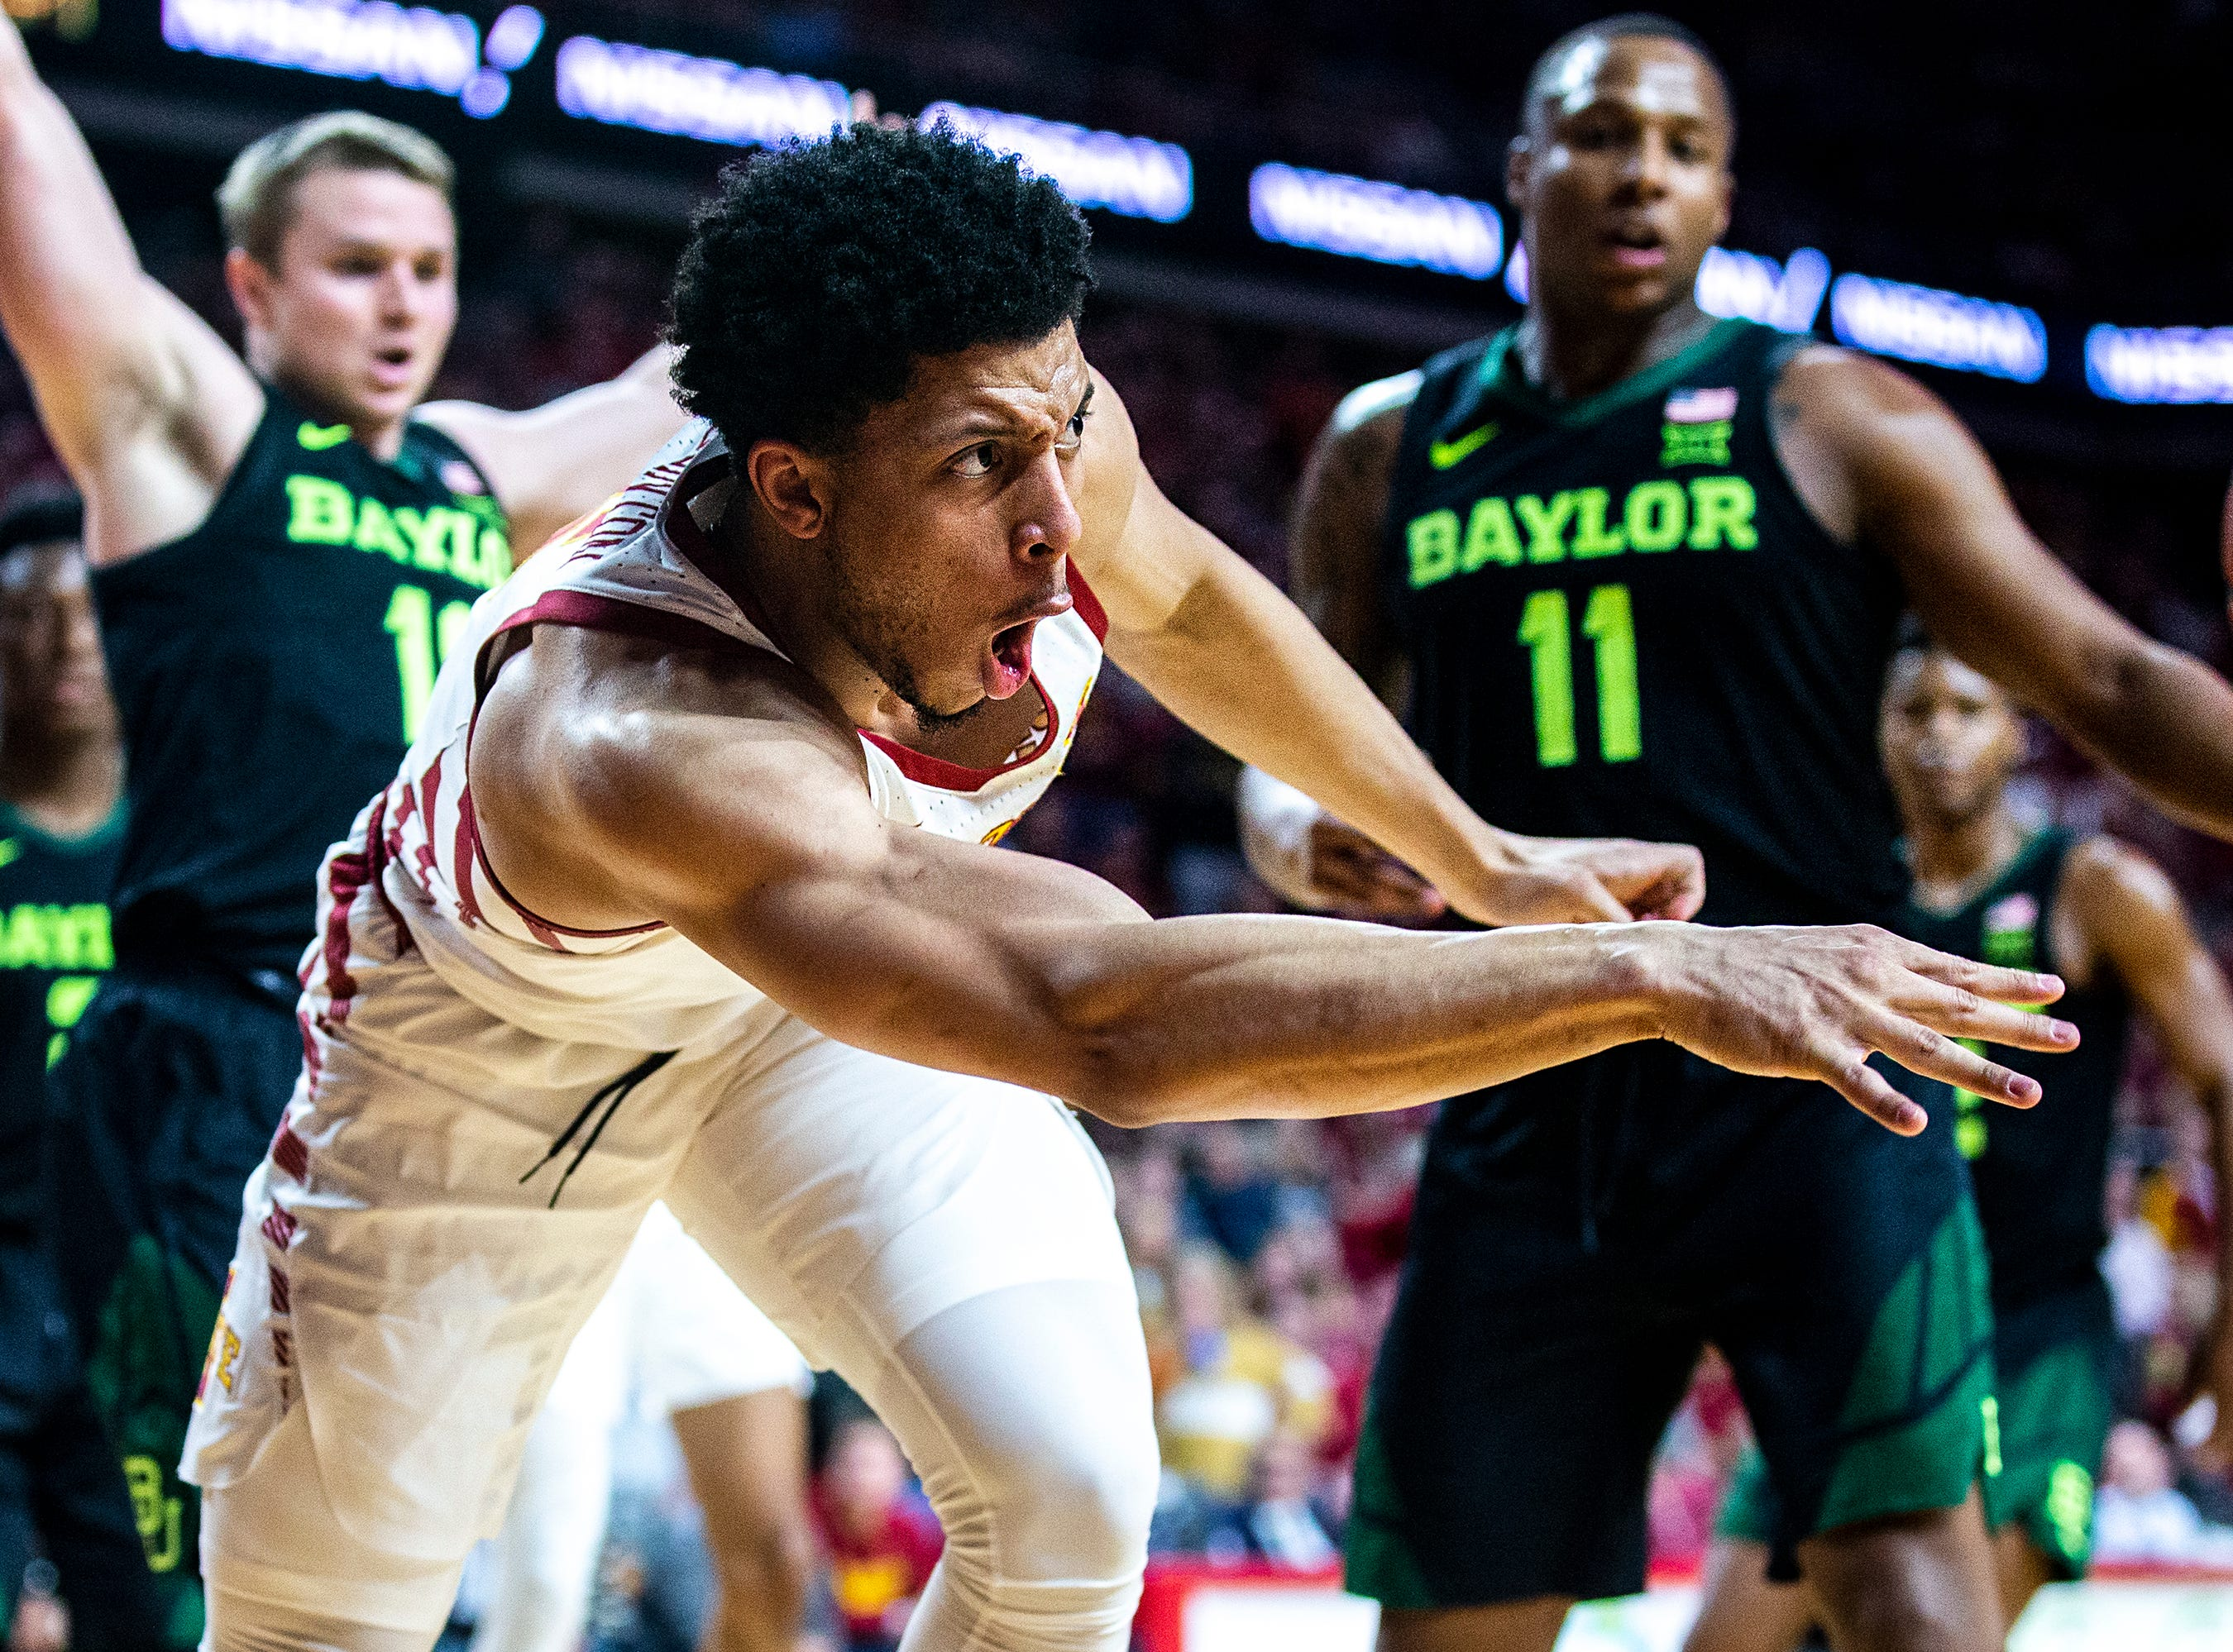 Iowa State's Lindell Wigginton makes a pass during the Iowa State men's basketball game against Baylor on Tuesday, Feb. 19, 2019, in Hilton Coliseum. The Cyclones fell to the Bears 69-73.